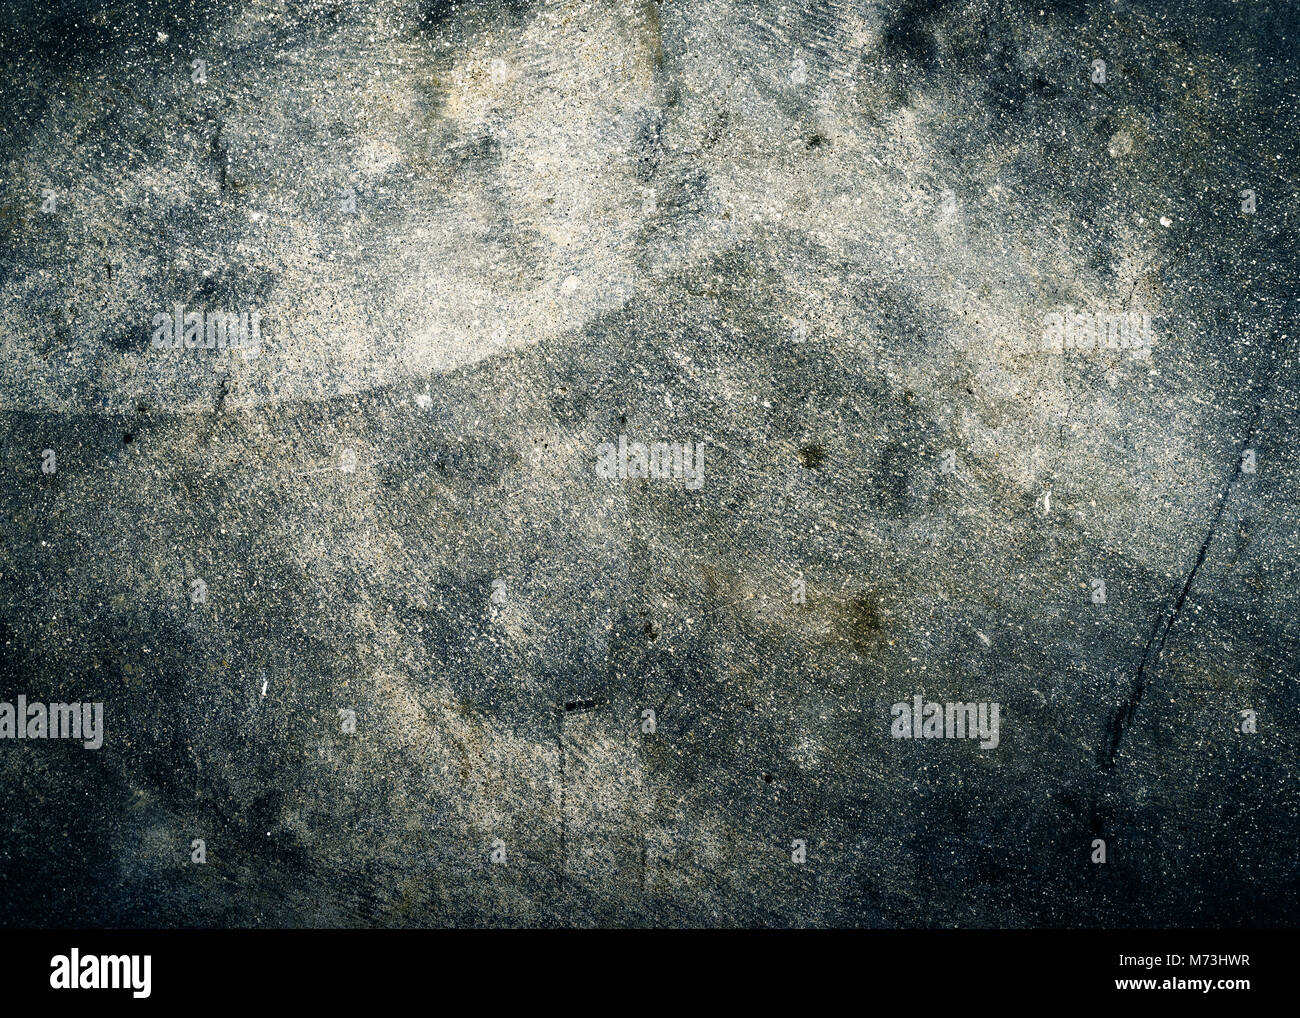 Grungy cement floor texture - Stock Image